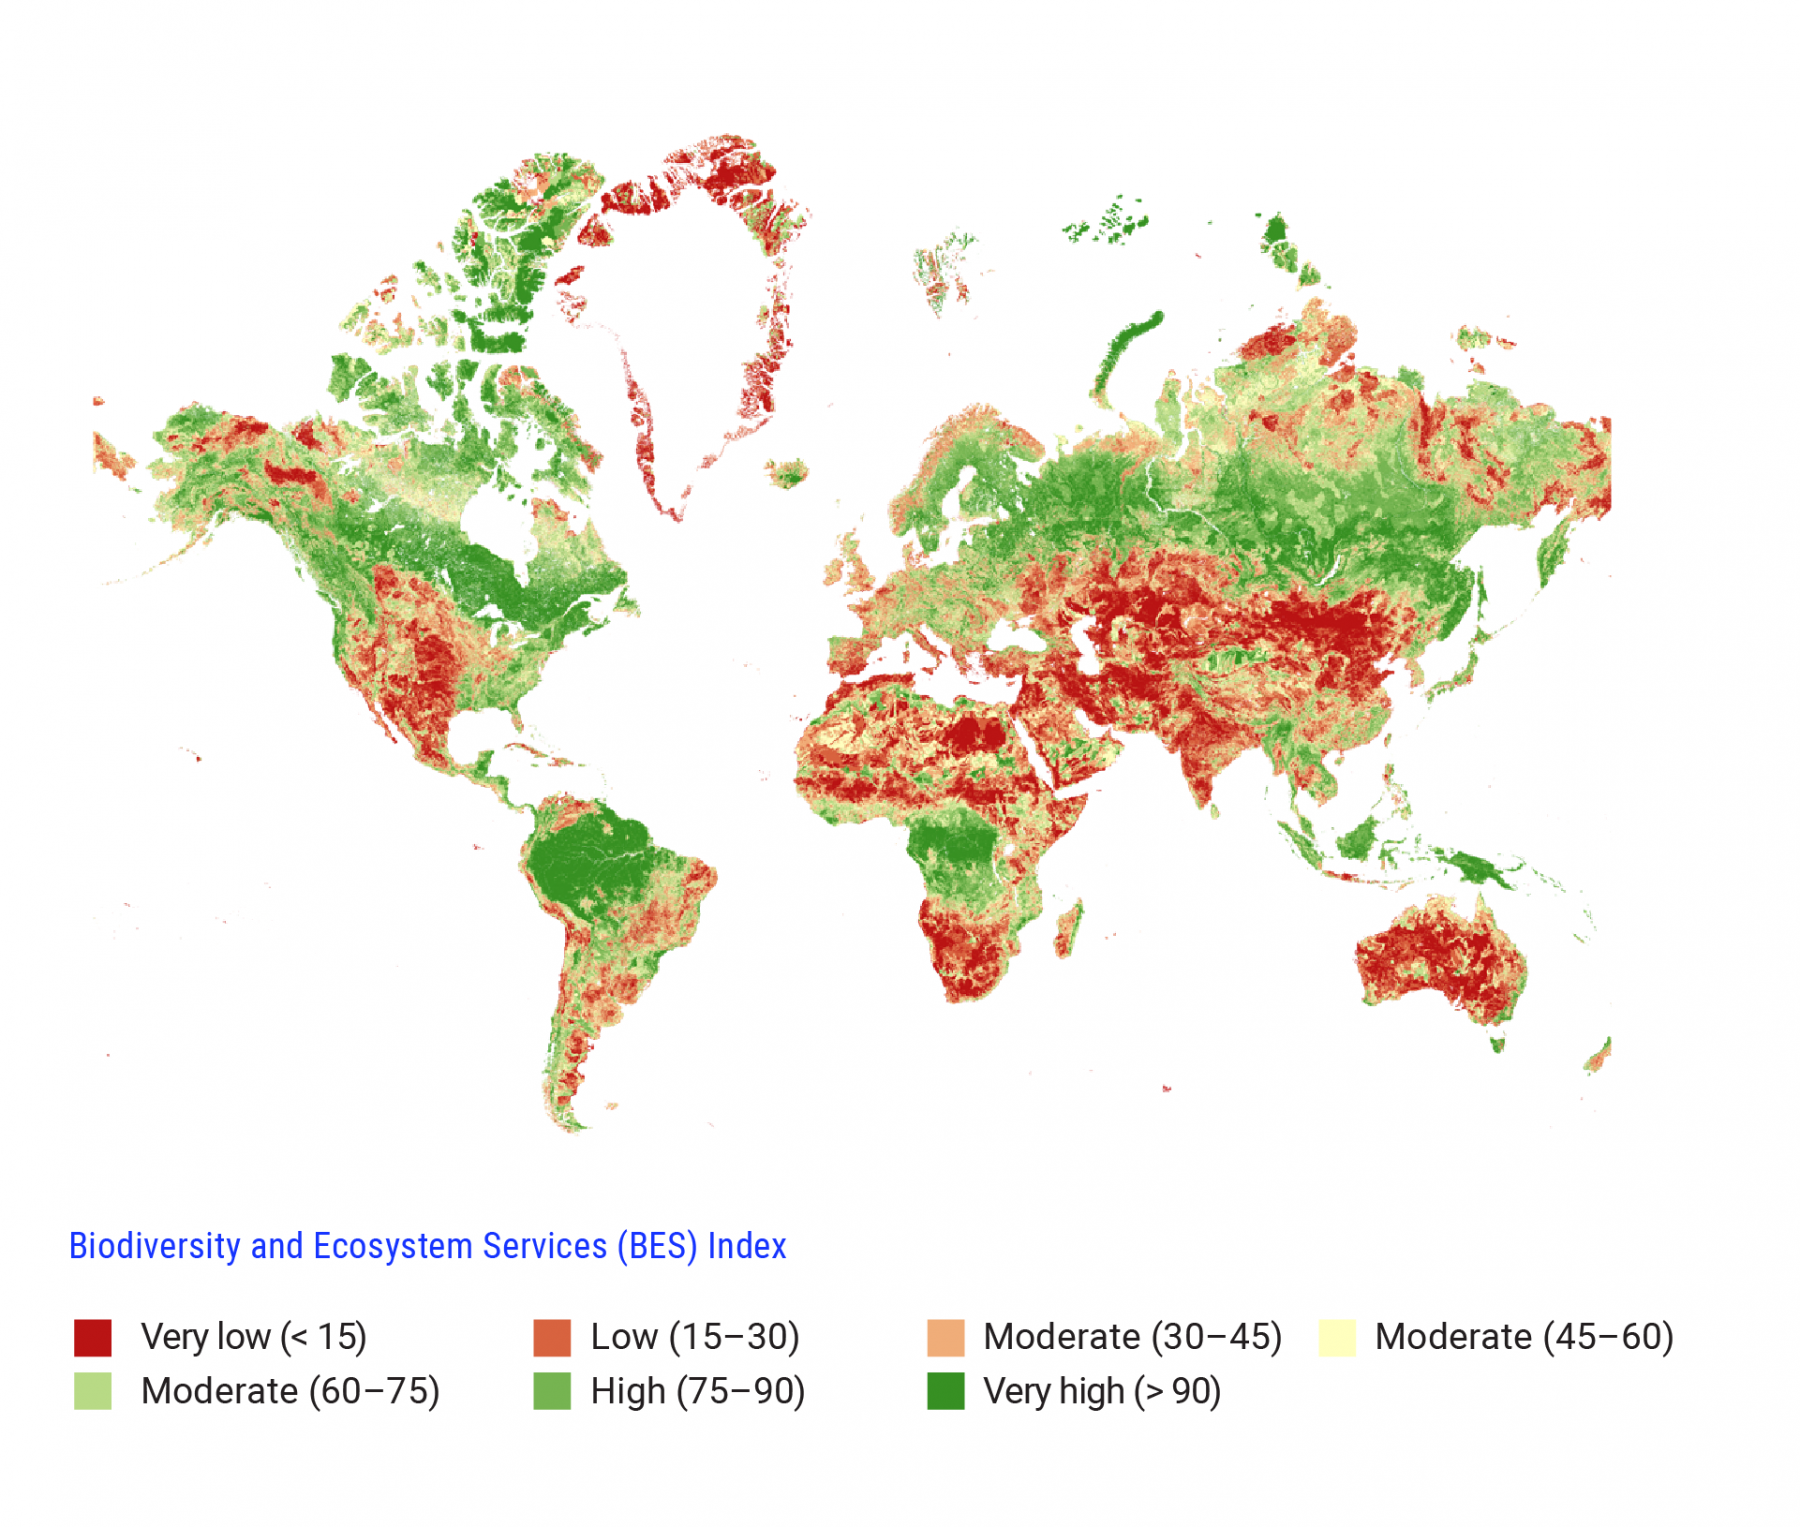 World map displays Biodiversity and Ecosystem Services (BES) Index values for different parts of the world. Very low BES values are shown in red and high BES values in green. Globally, the areas with the highest BES values are Canada, northern South America, central Africa, Northern Europe, Northern Asia, Papua New Guinea and Indonesia.